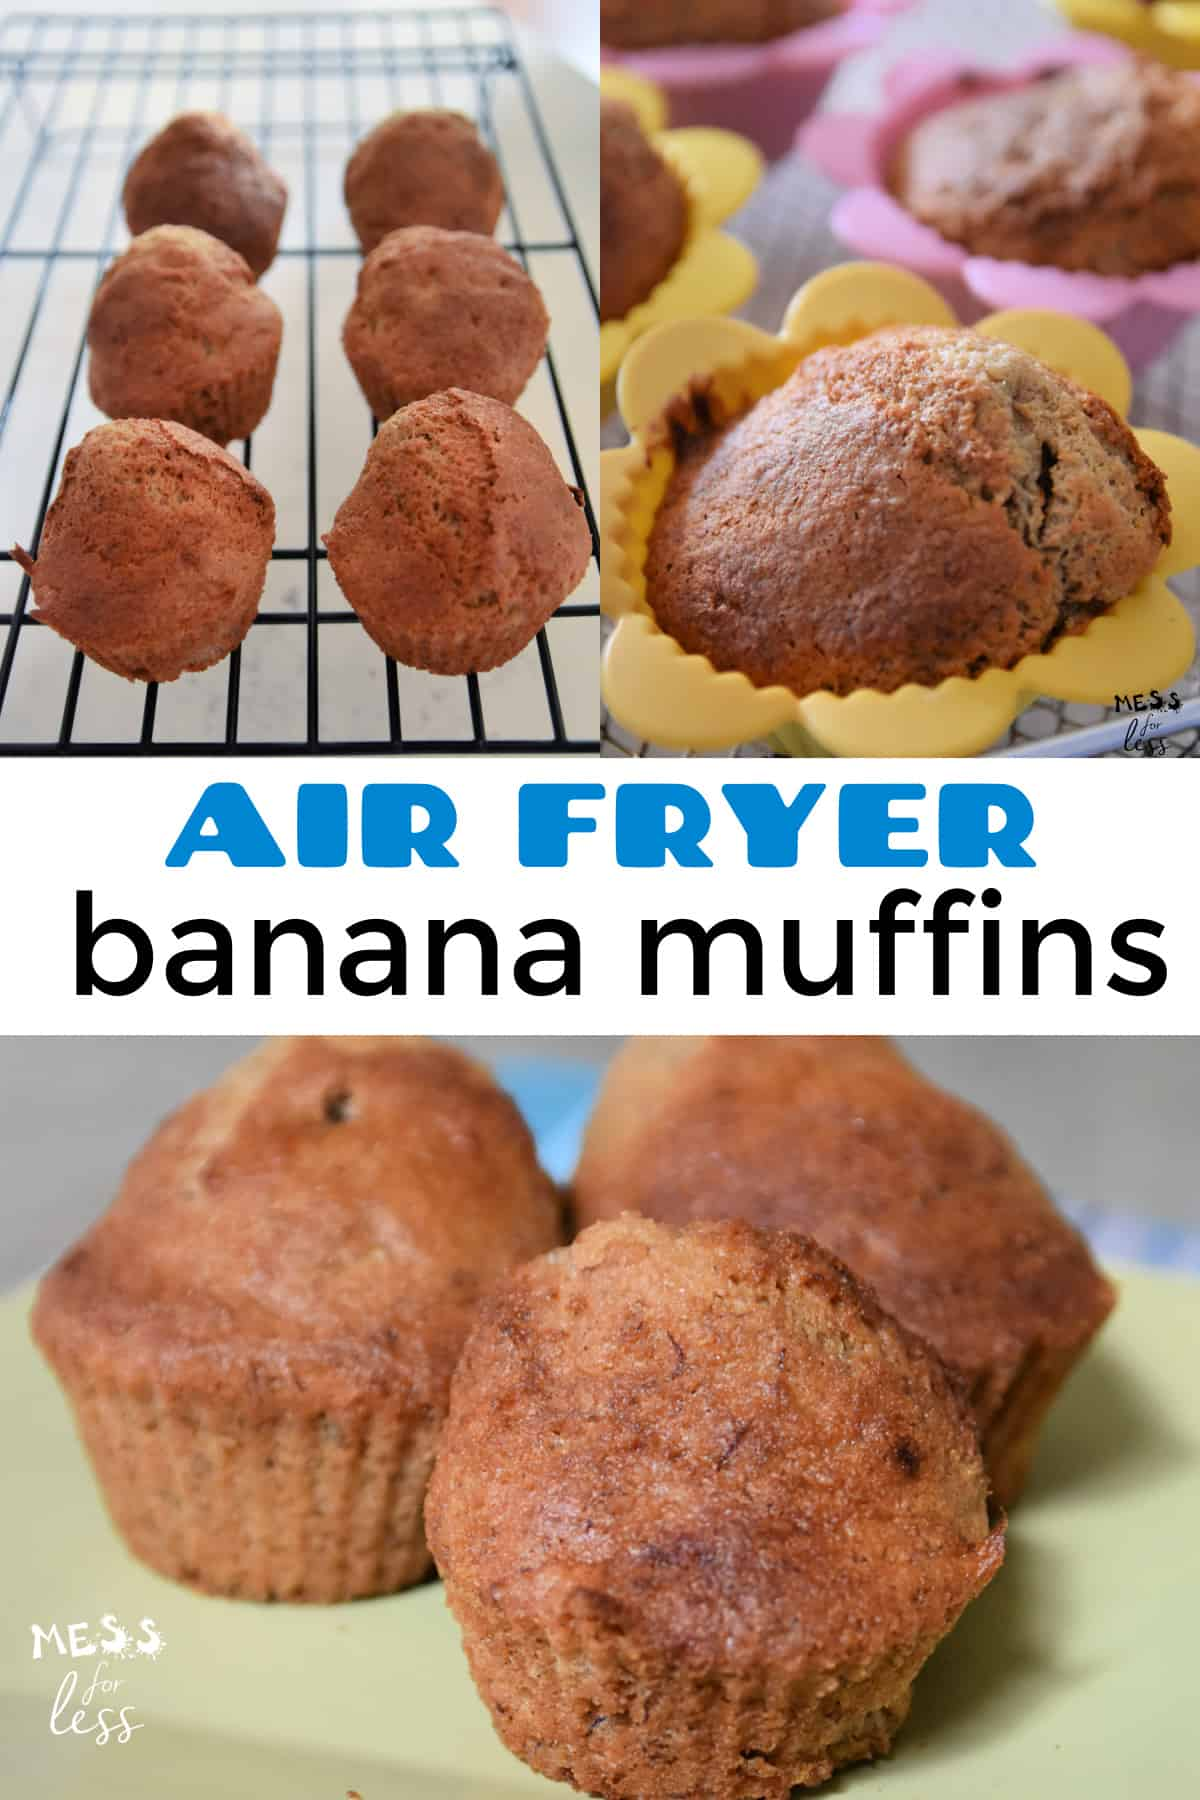 I have been doing lots of air fryer baking so I decided to adapt my favorite banana muffin recipe for the air fryer. The results did not disappoint. These Air Fryer Banana Muffins are moist and delicious and baked in a fraction of the normal time.